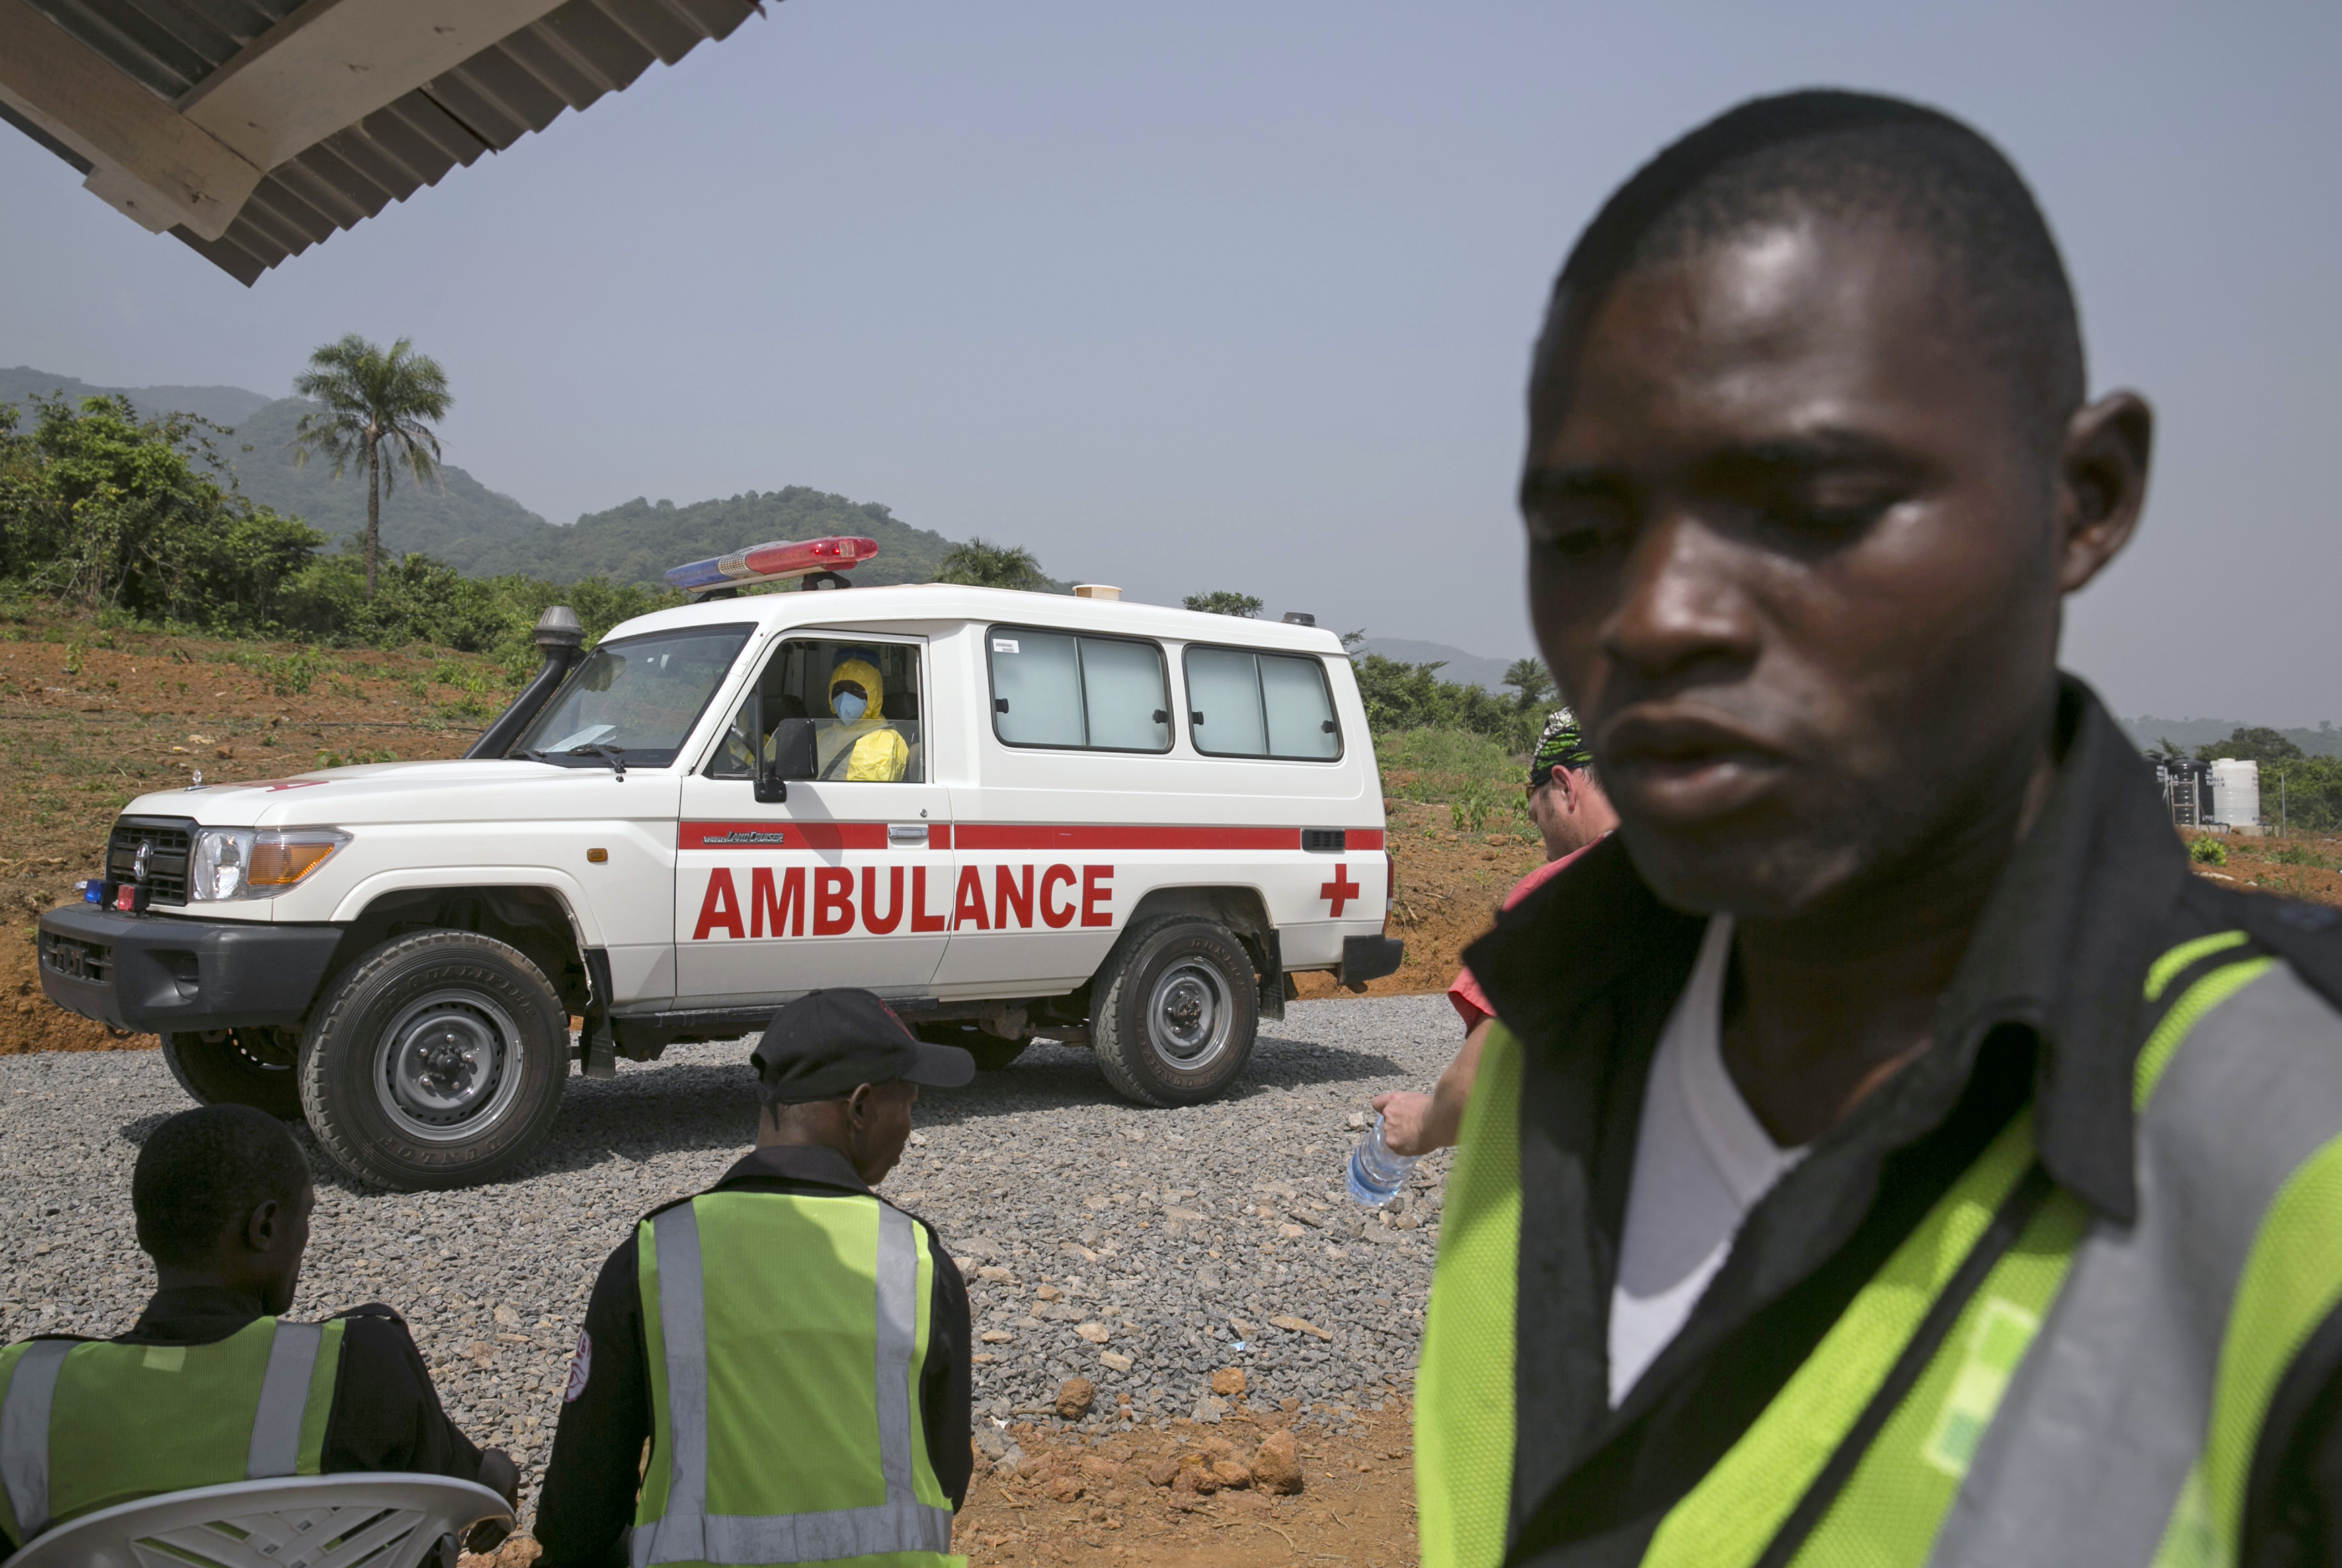 An ambulance transporting an Ebola patient drives to the entrance of a treatment centre outside Freetown, Sierra Leone.